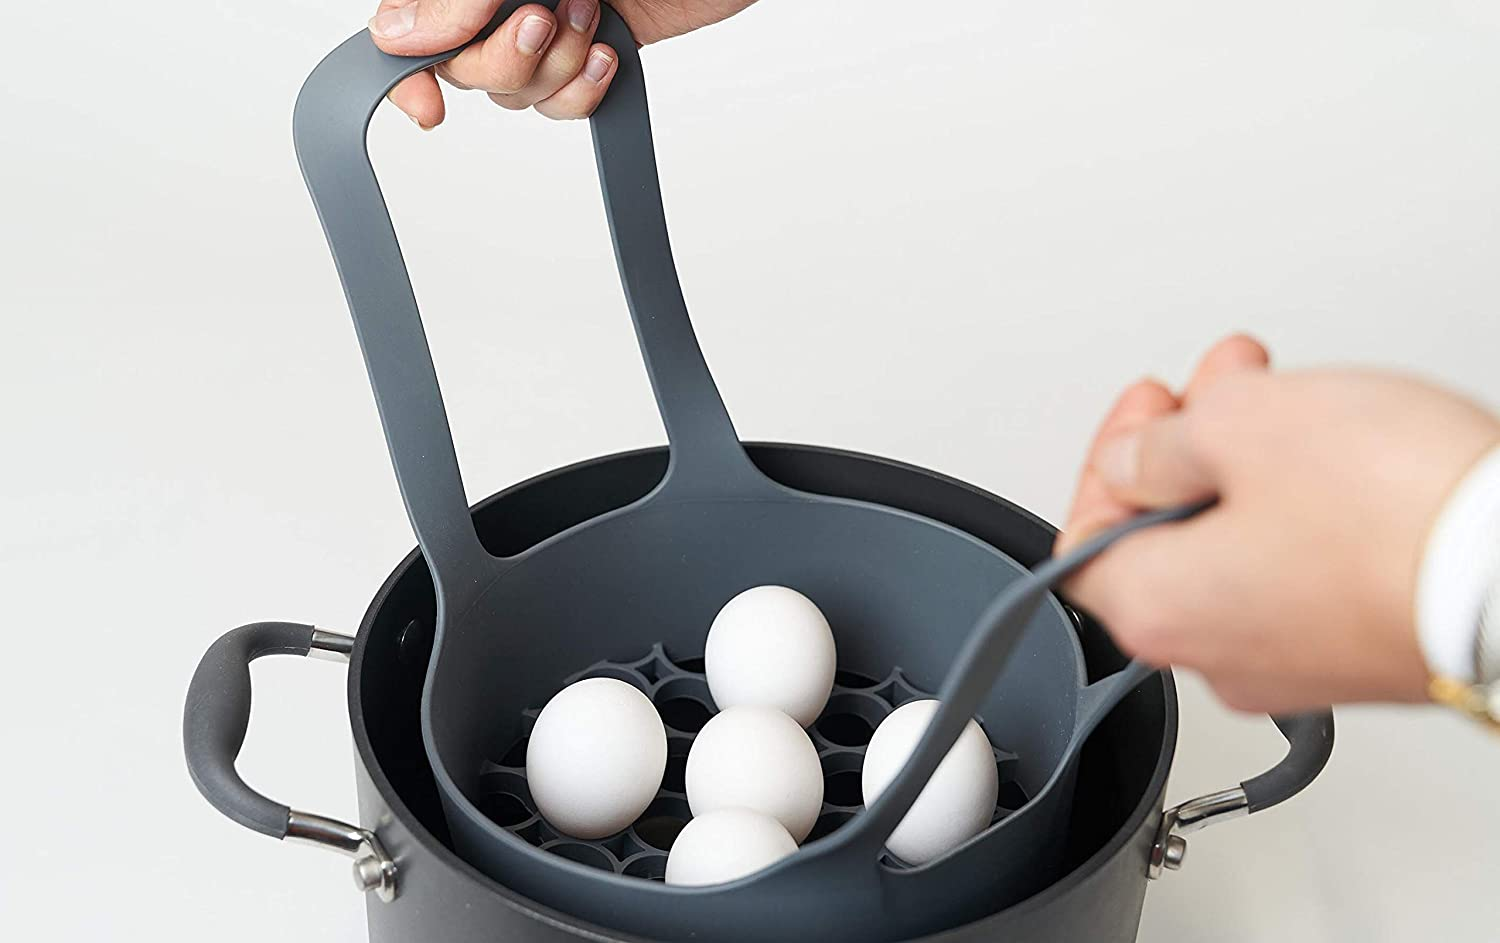 ORA Silicone Steamer/Boil Basket & Egg Cooker- Compatible with Instant Pot, Pressure Cooker and Traditional Cookware- Boil & Steam Eggs Crack Free